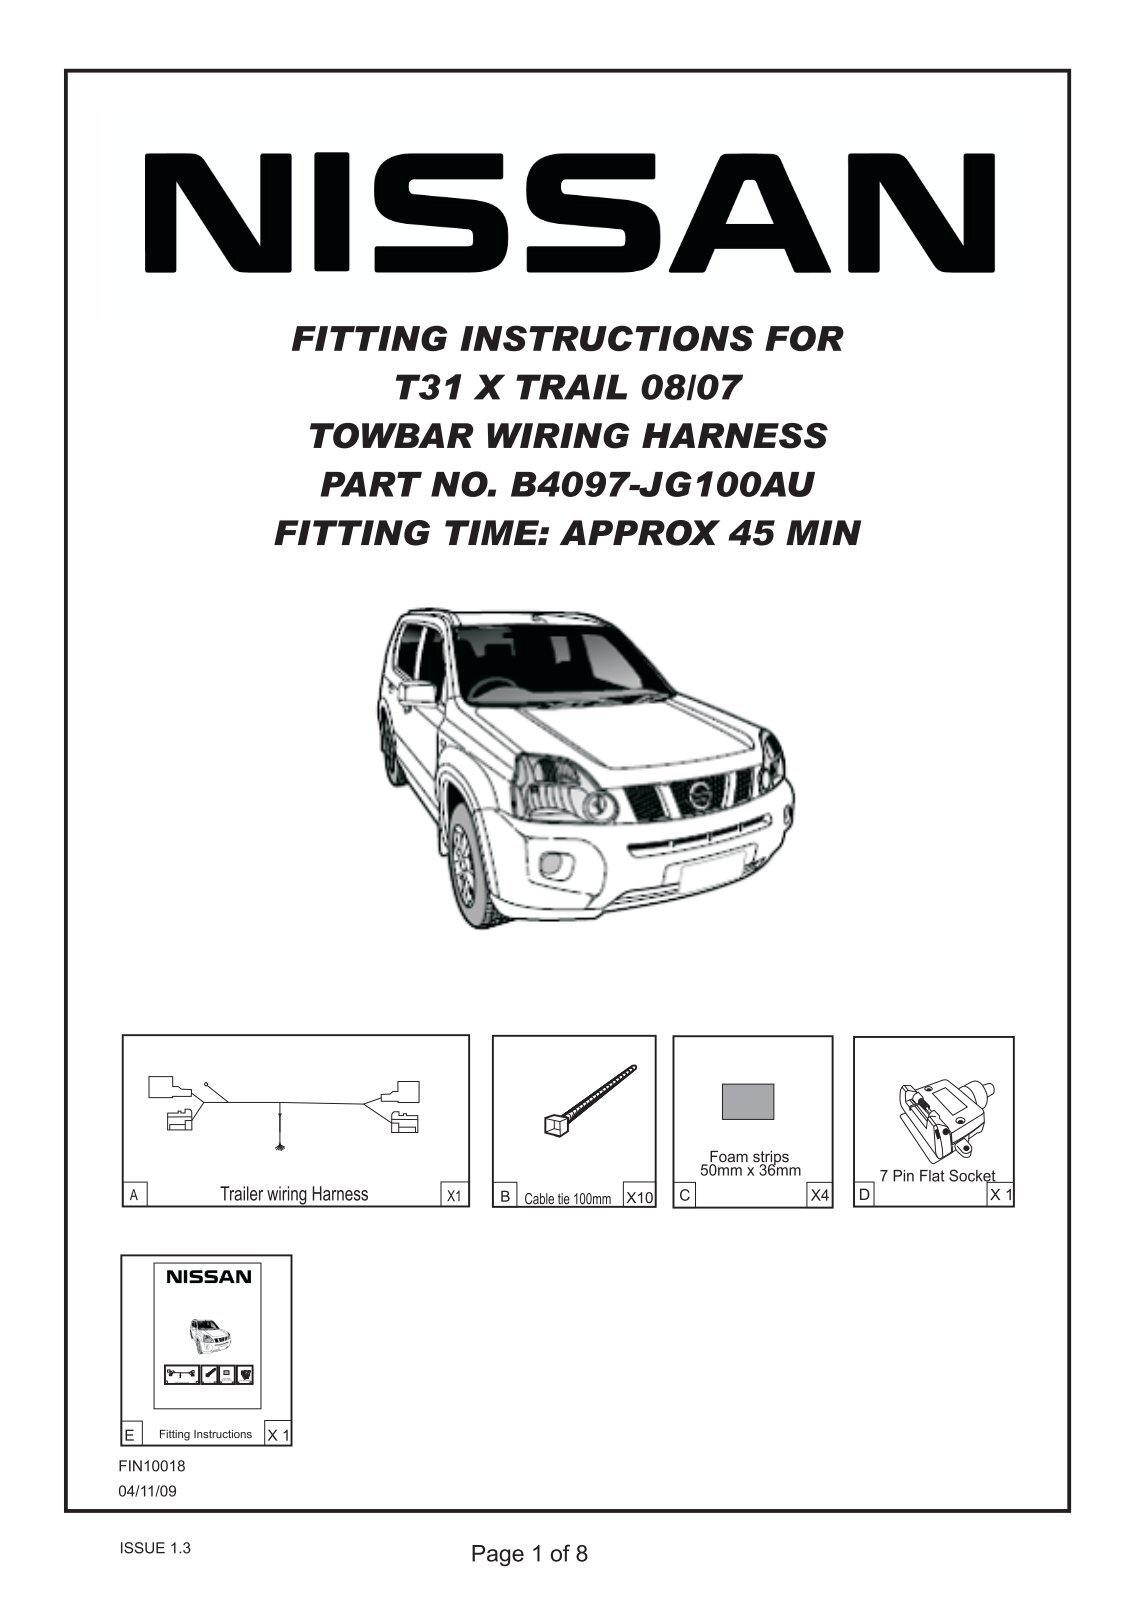 2002 Nissan Trail Wiring Diagram : Nissan altima s ke diagram auto parts